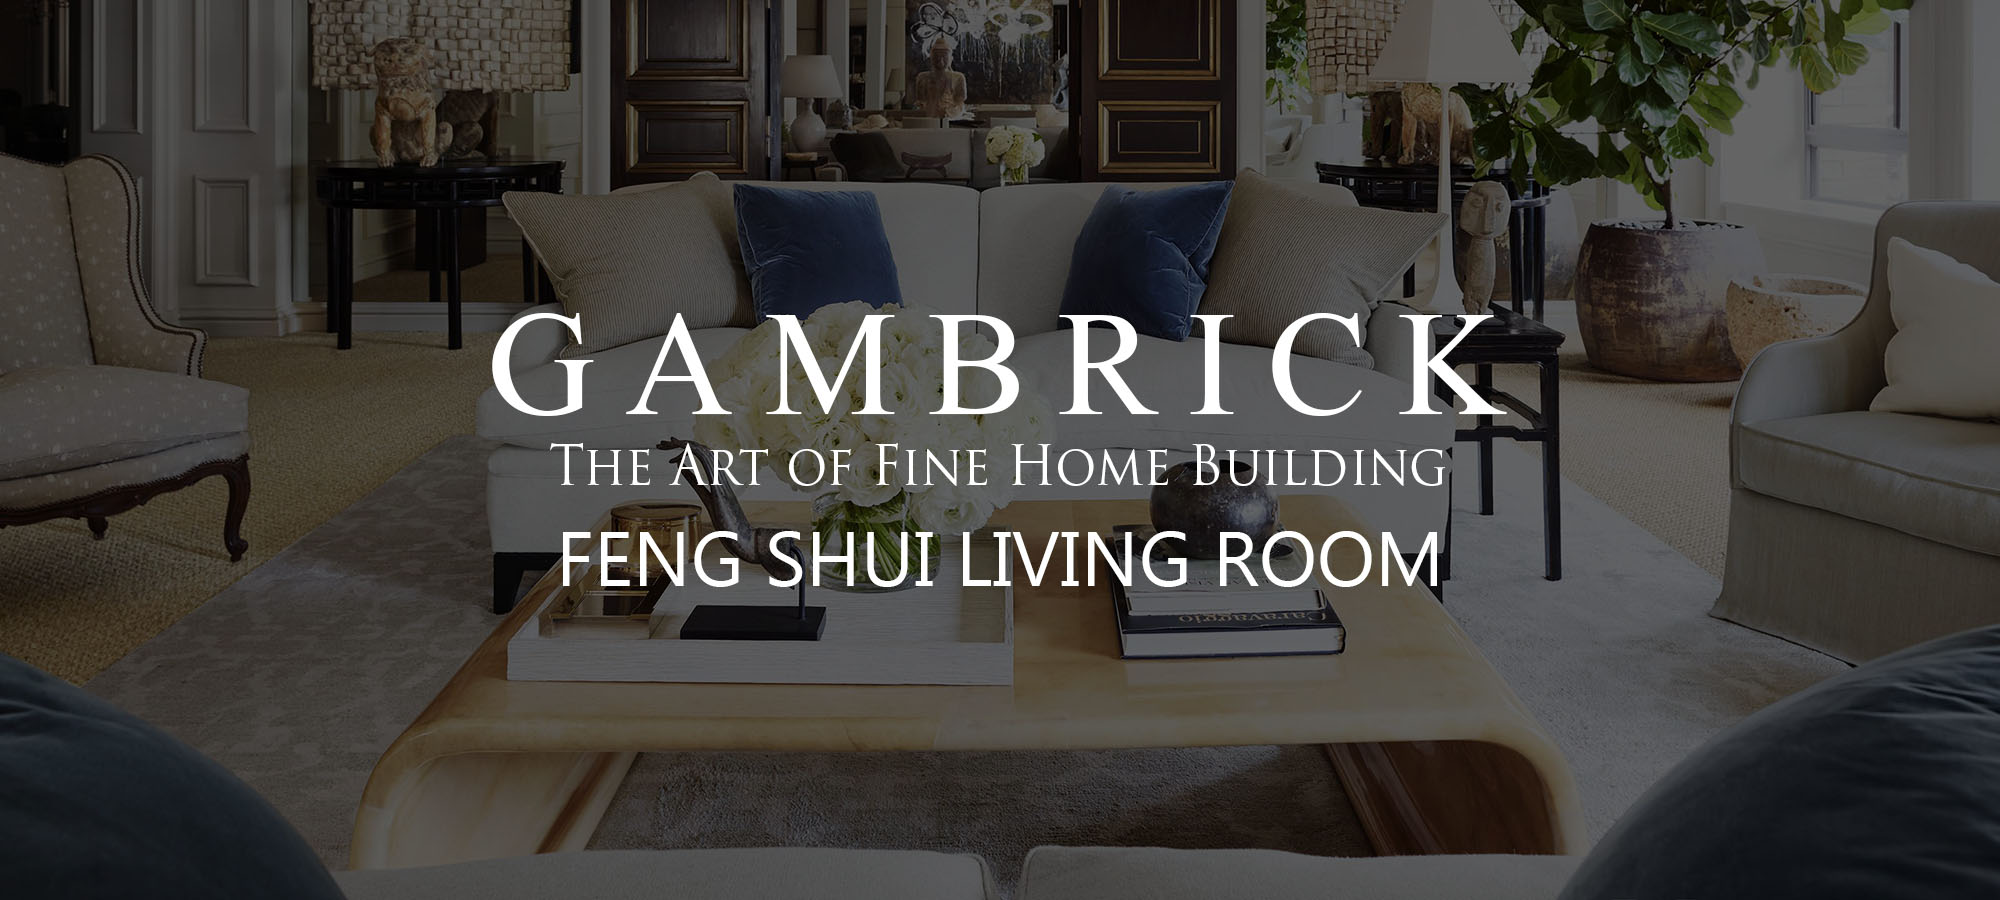 feng shui living room banner _ Gambrick